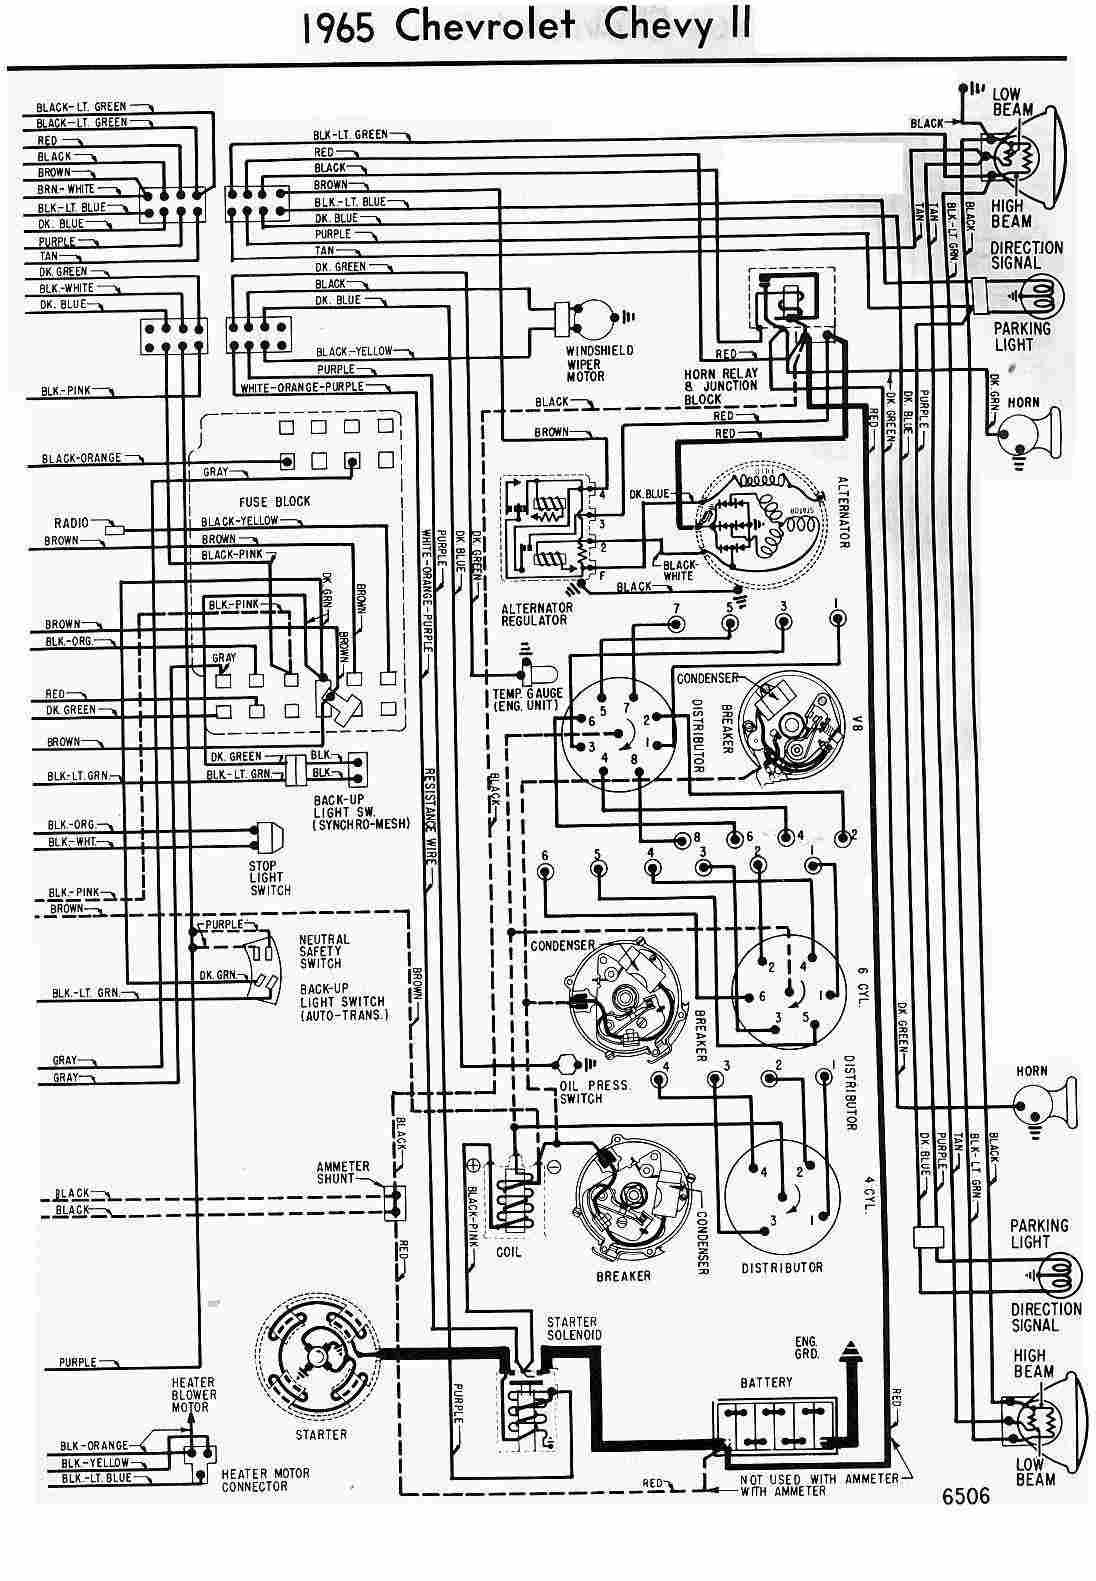 hight resolution of 2003 chevy impala heater schematic simple wiring post rh 37 asiagourmet igb de 1966 impala wiring diagram 1961 impala wiring diagram